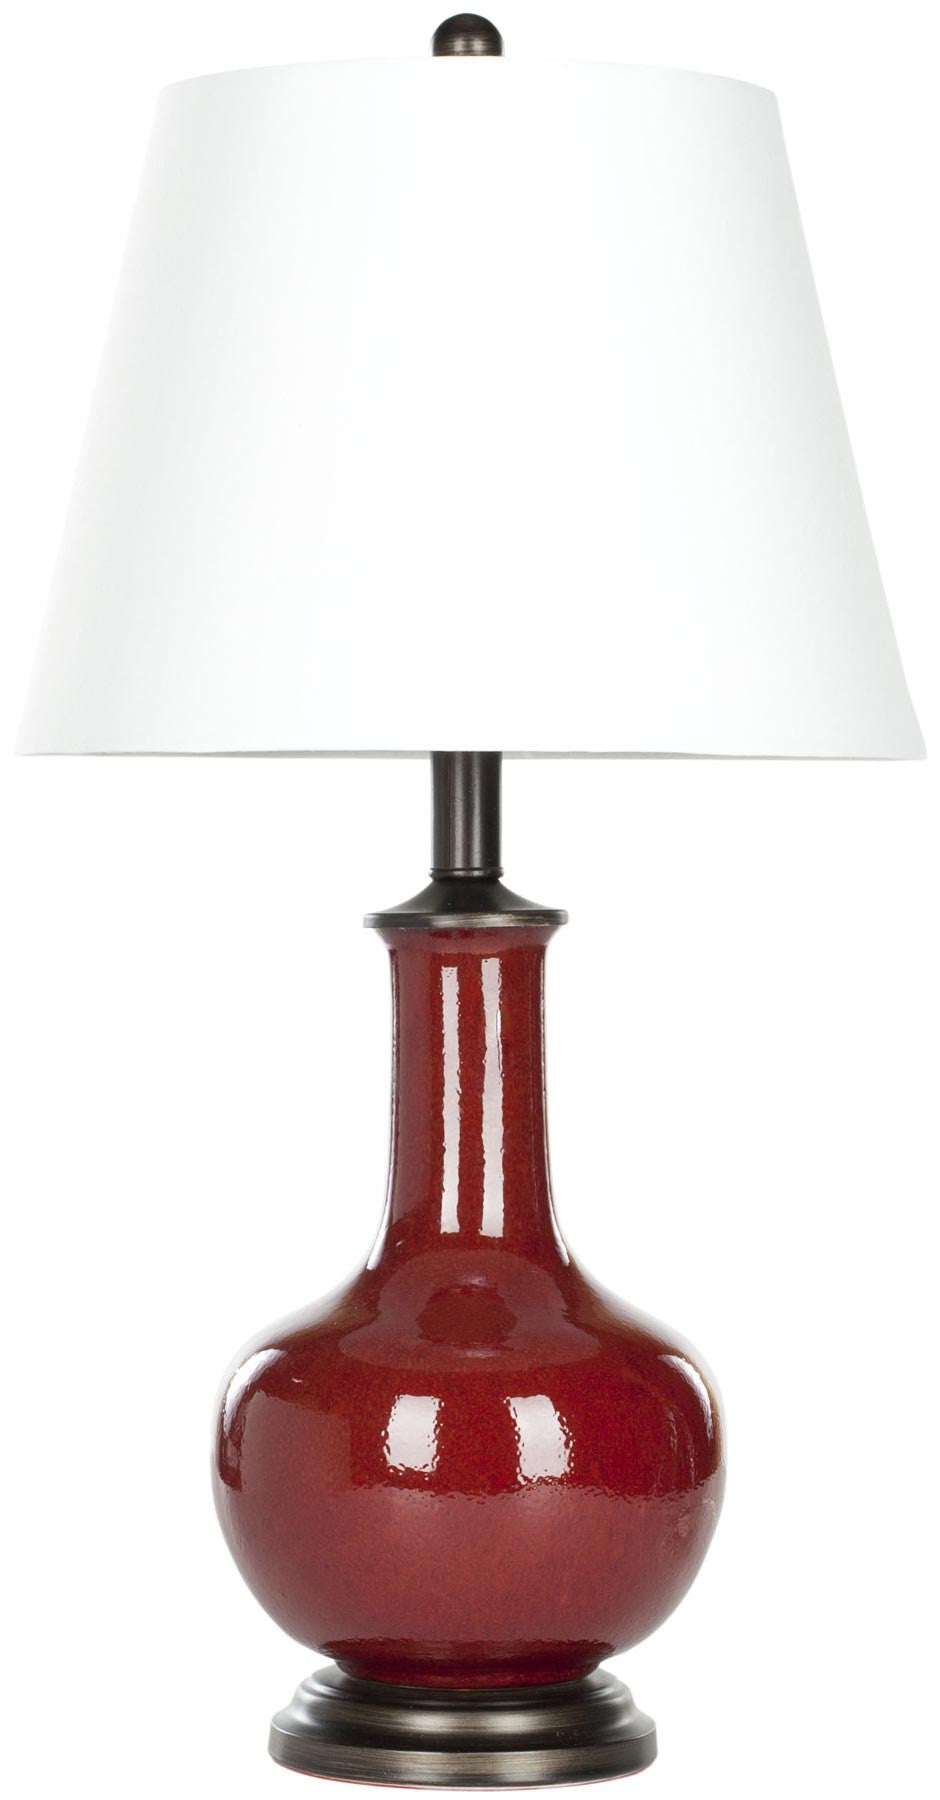 Ceramic table lamps red - Carolanne Ceramic Table Lamp In Red With White Shade Set Of 2 Table